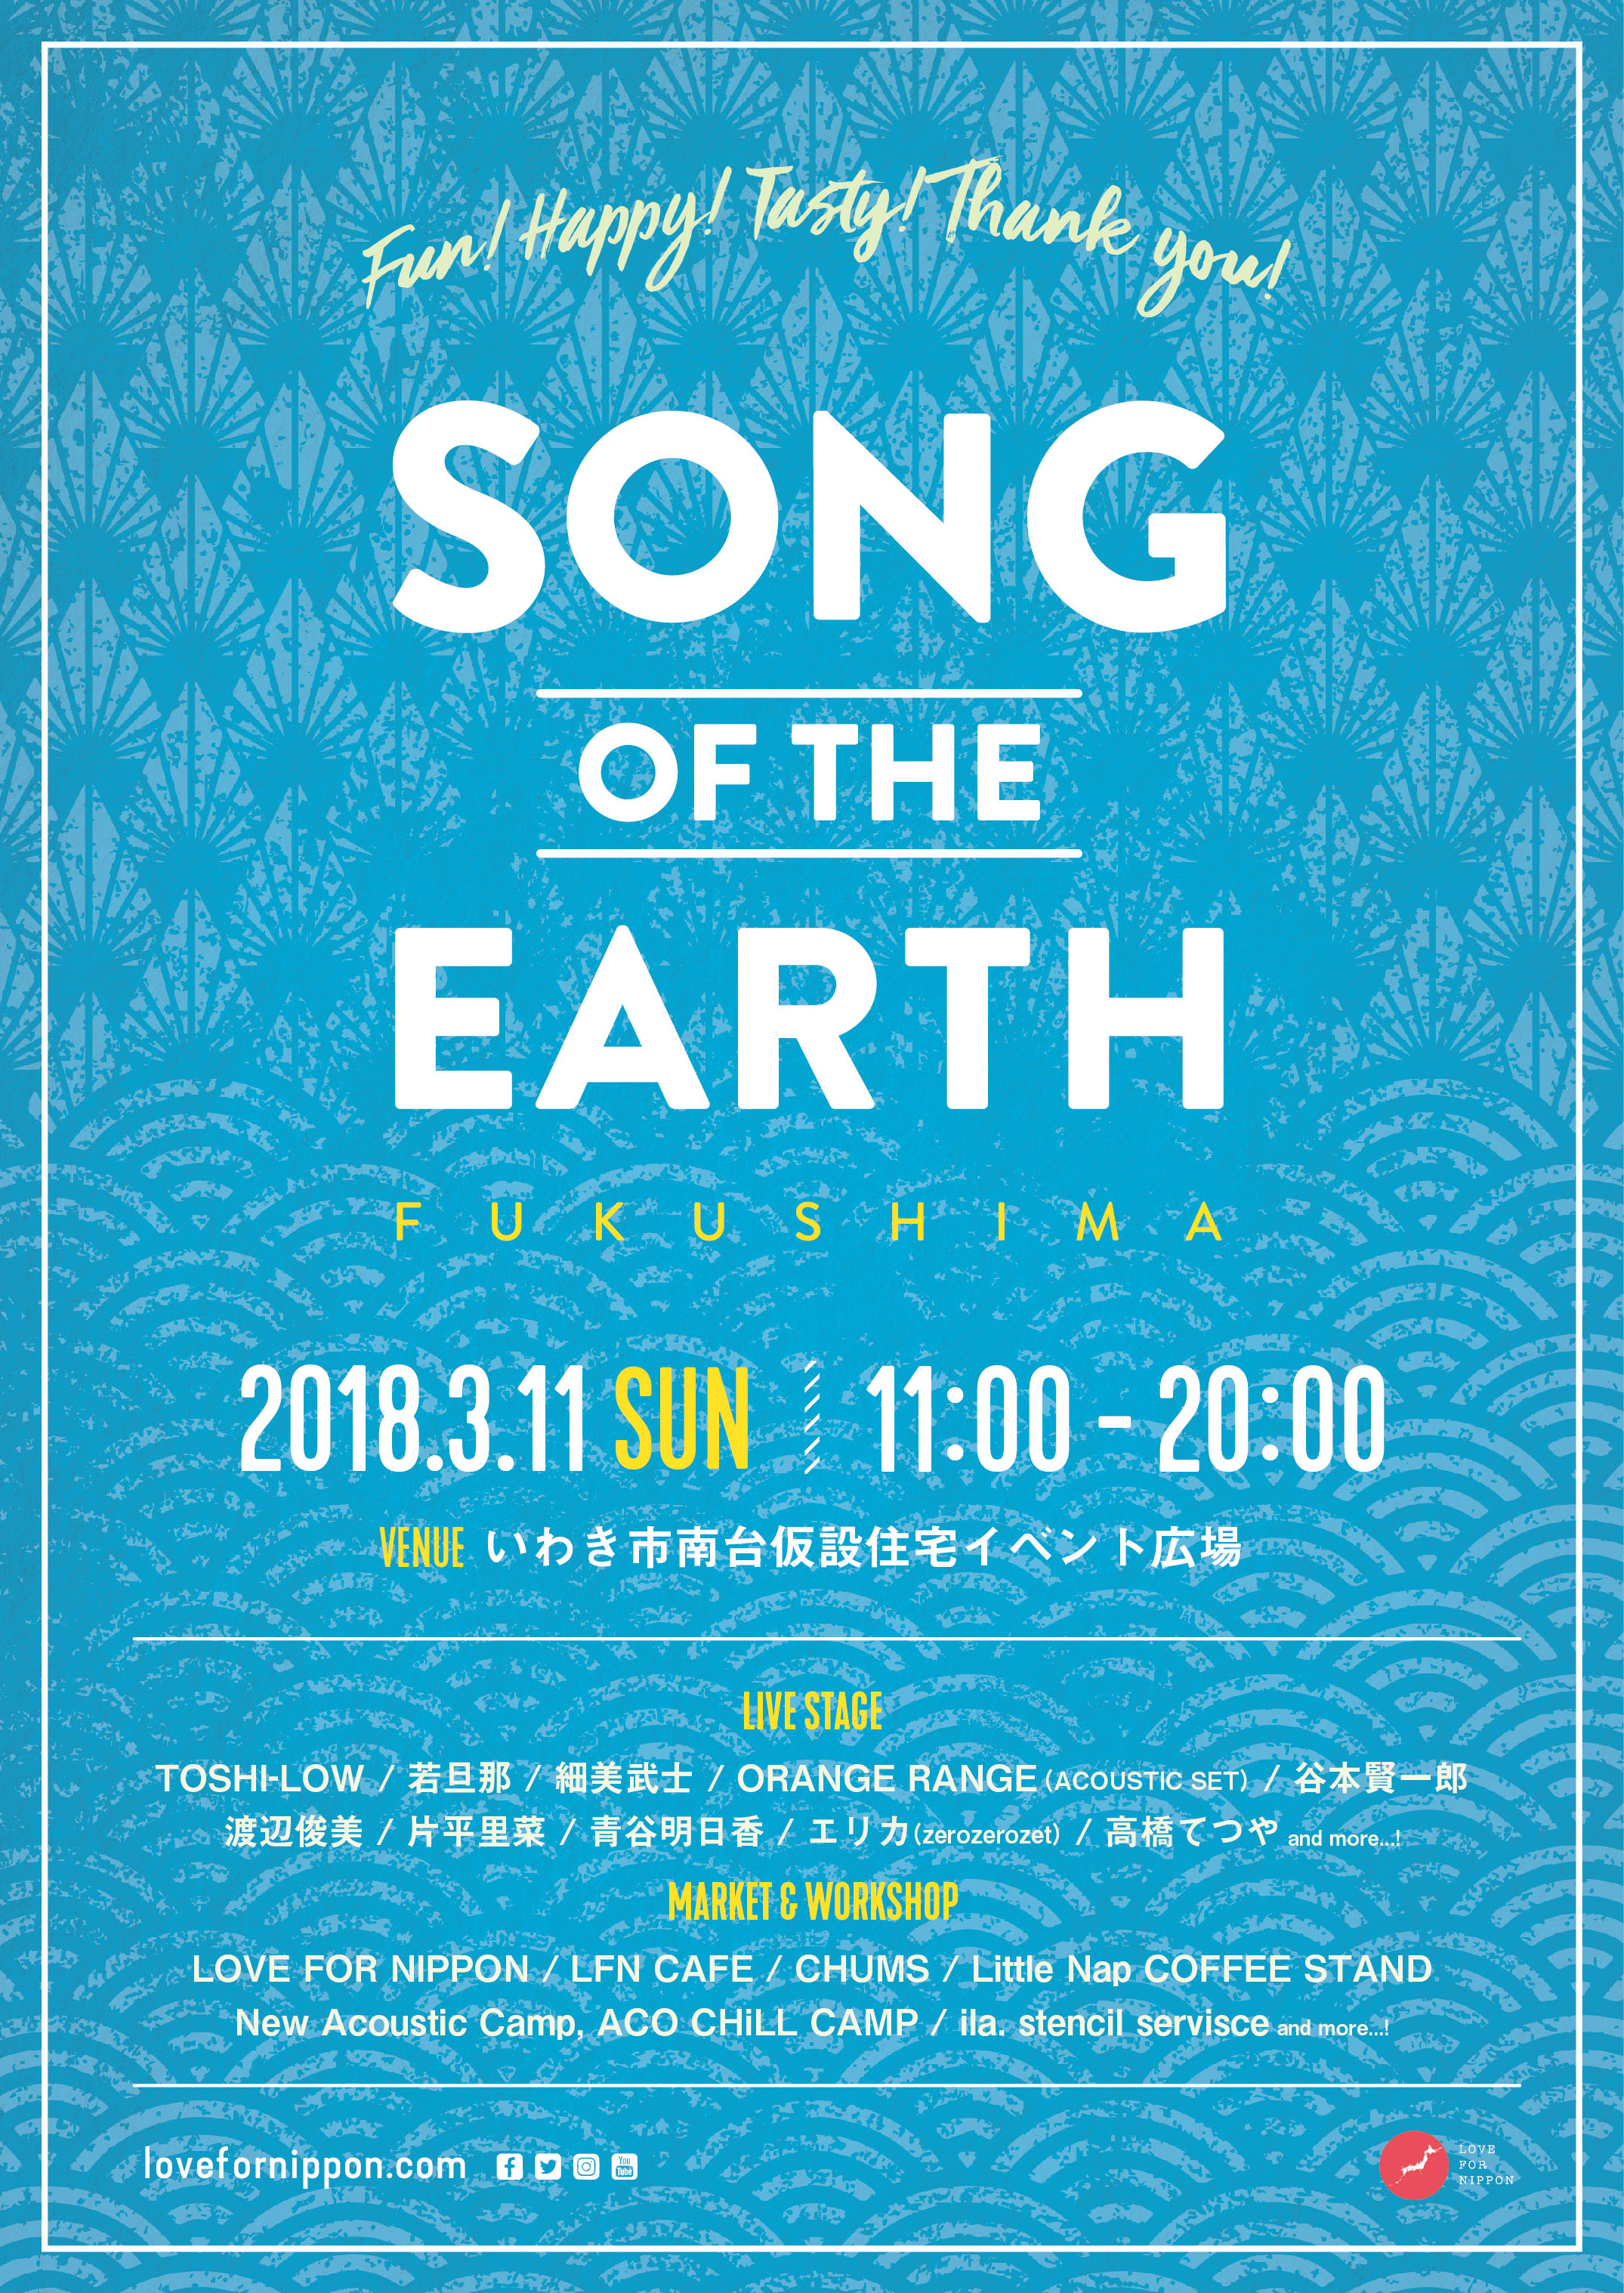 SONG OF THE EARTH FUKUSHIMA -CANDLE11th-(SOTE311)ありがとうございました!